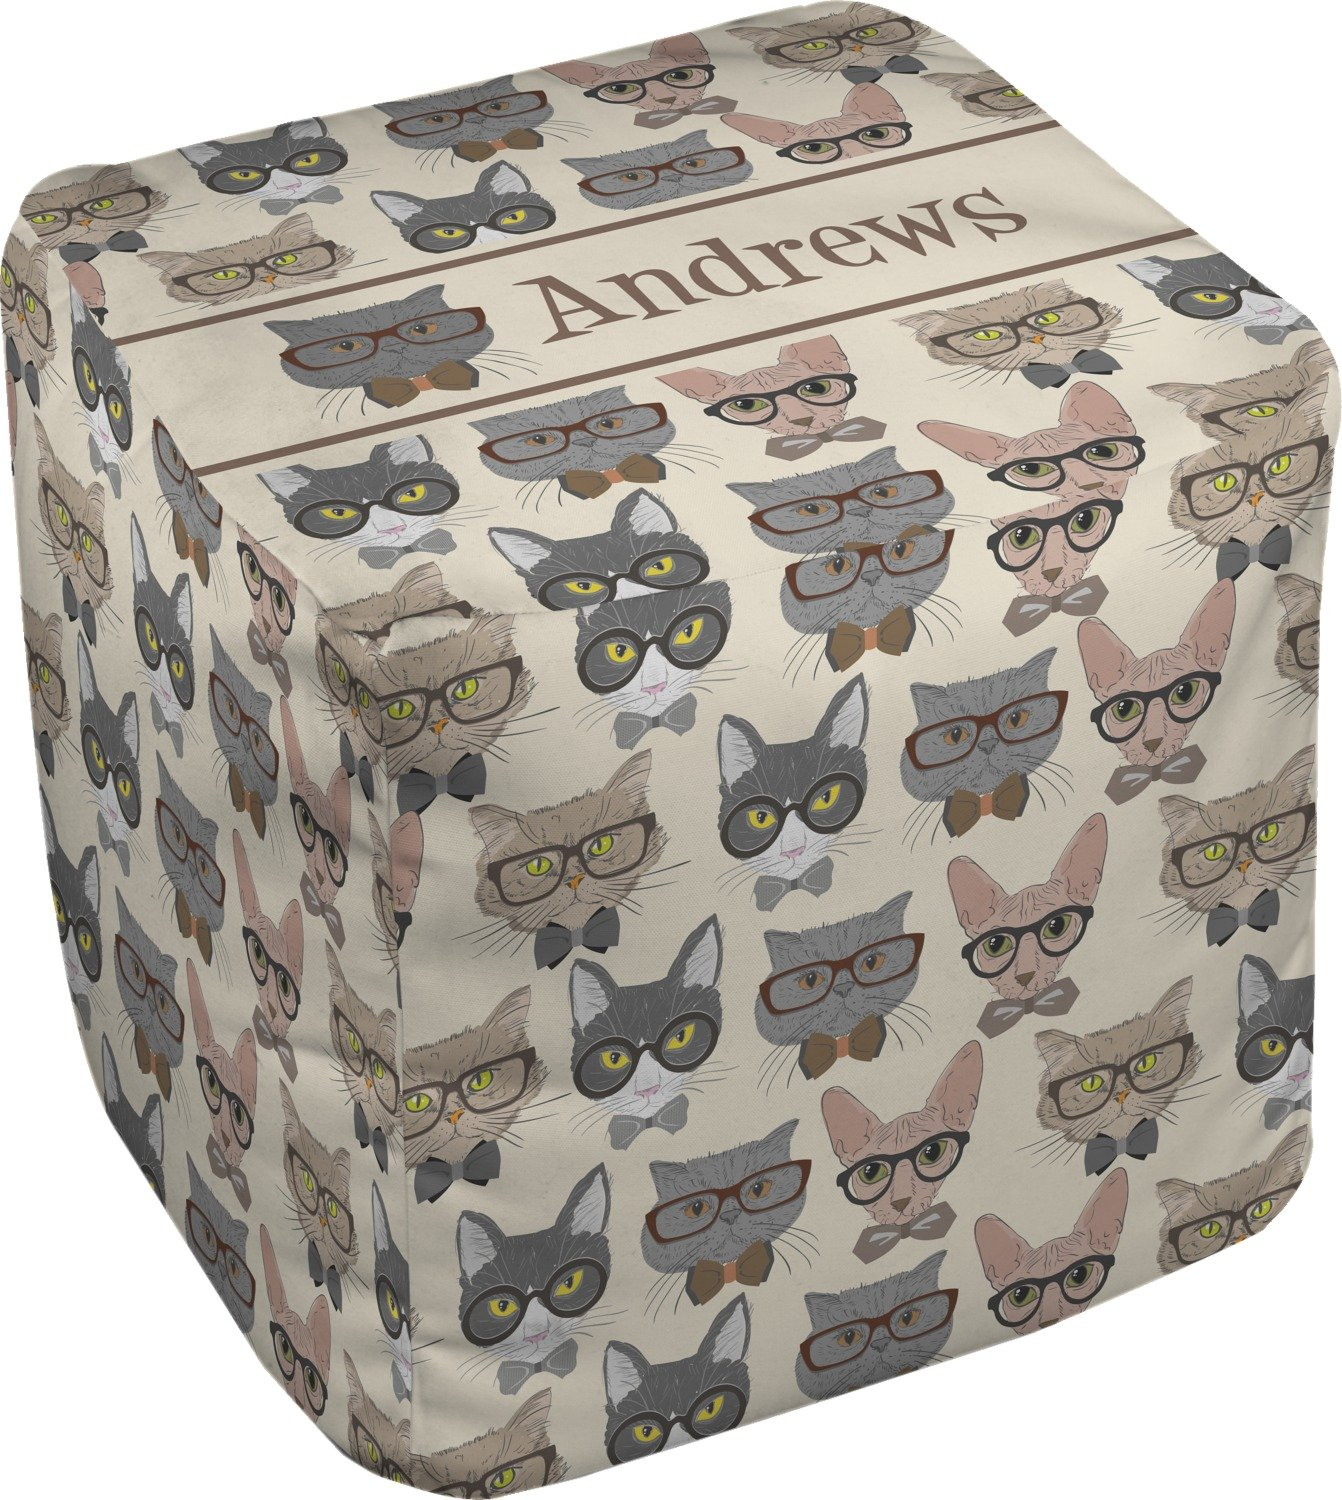 RNK Shops Hipster Cats Cube Pouf Ottoman - 13'' (Personalized)